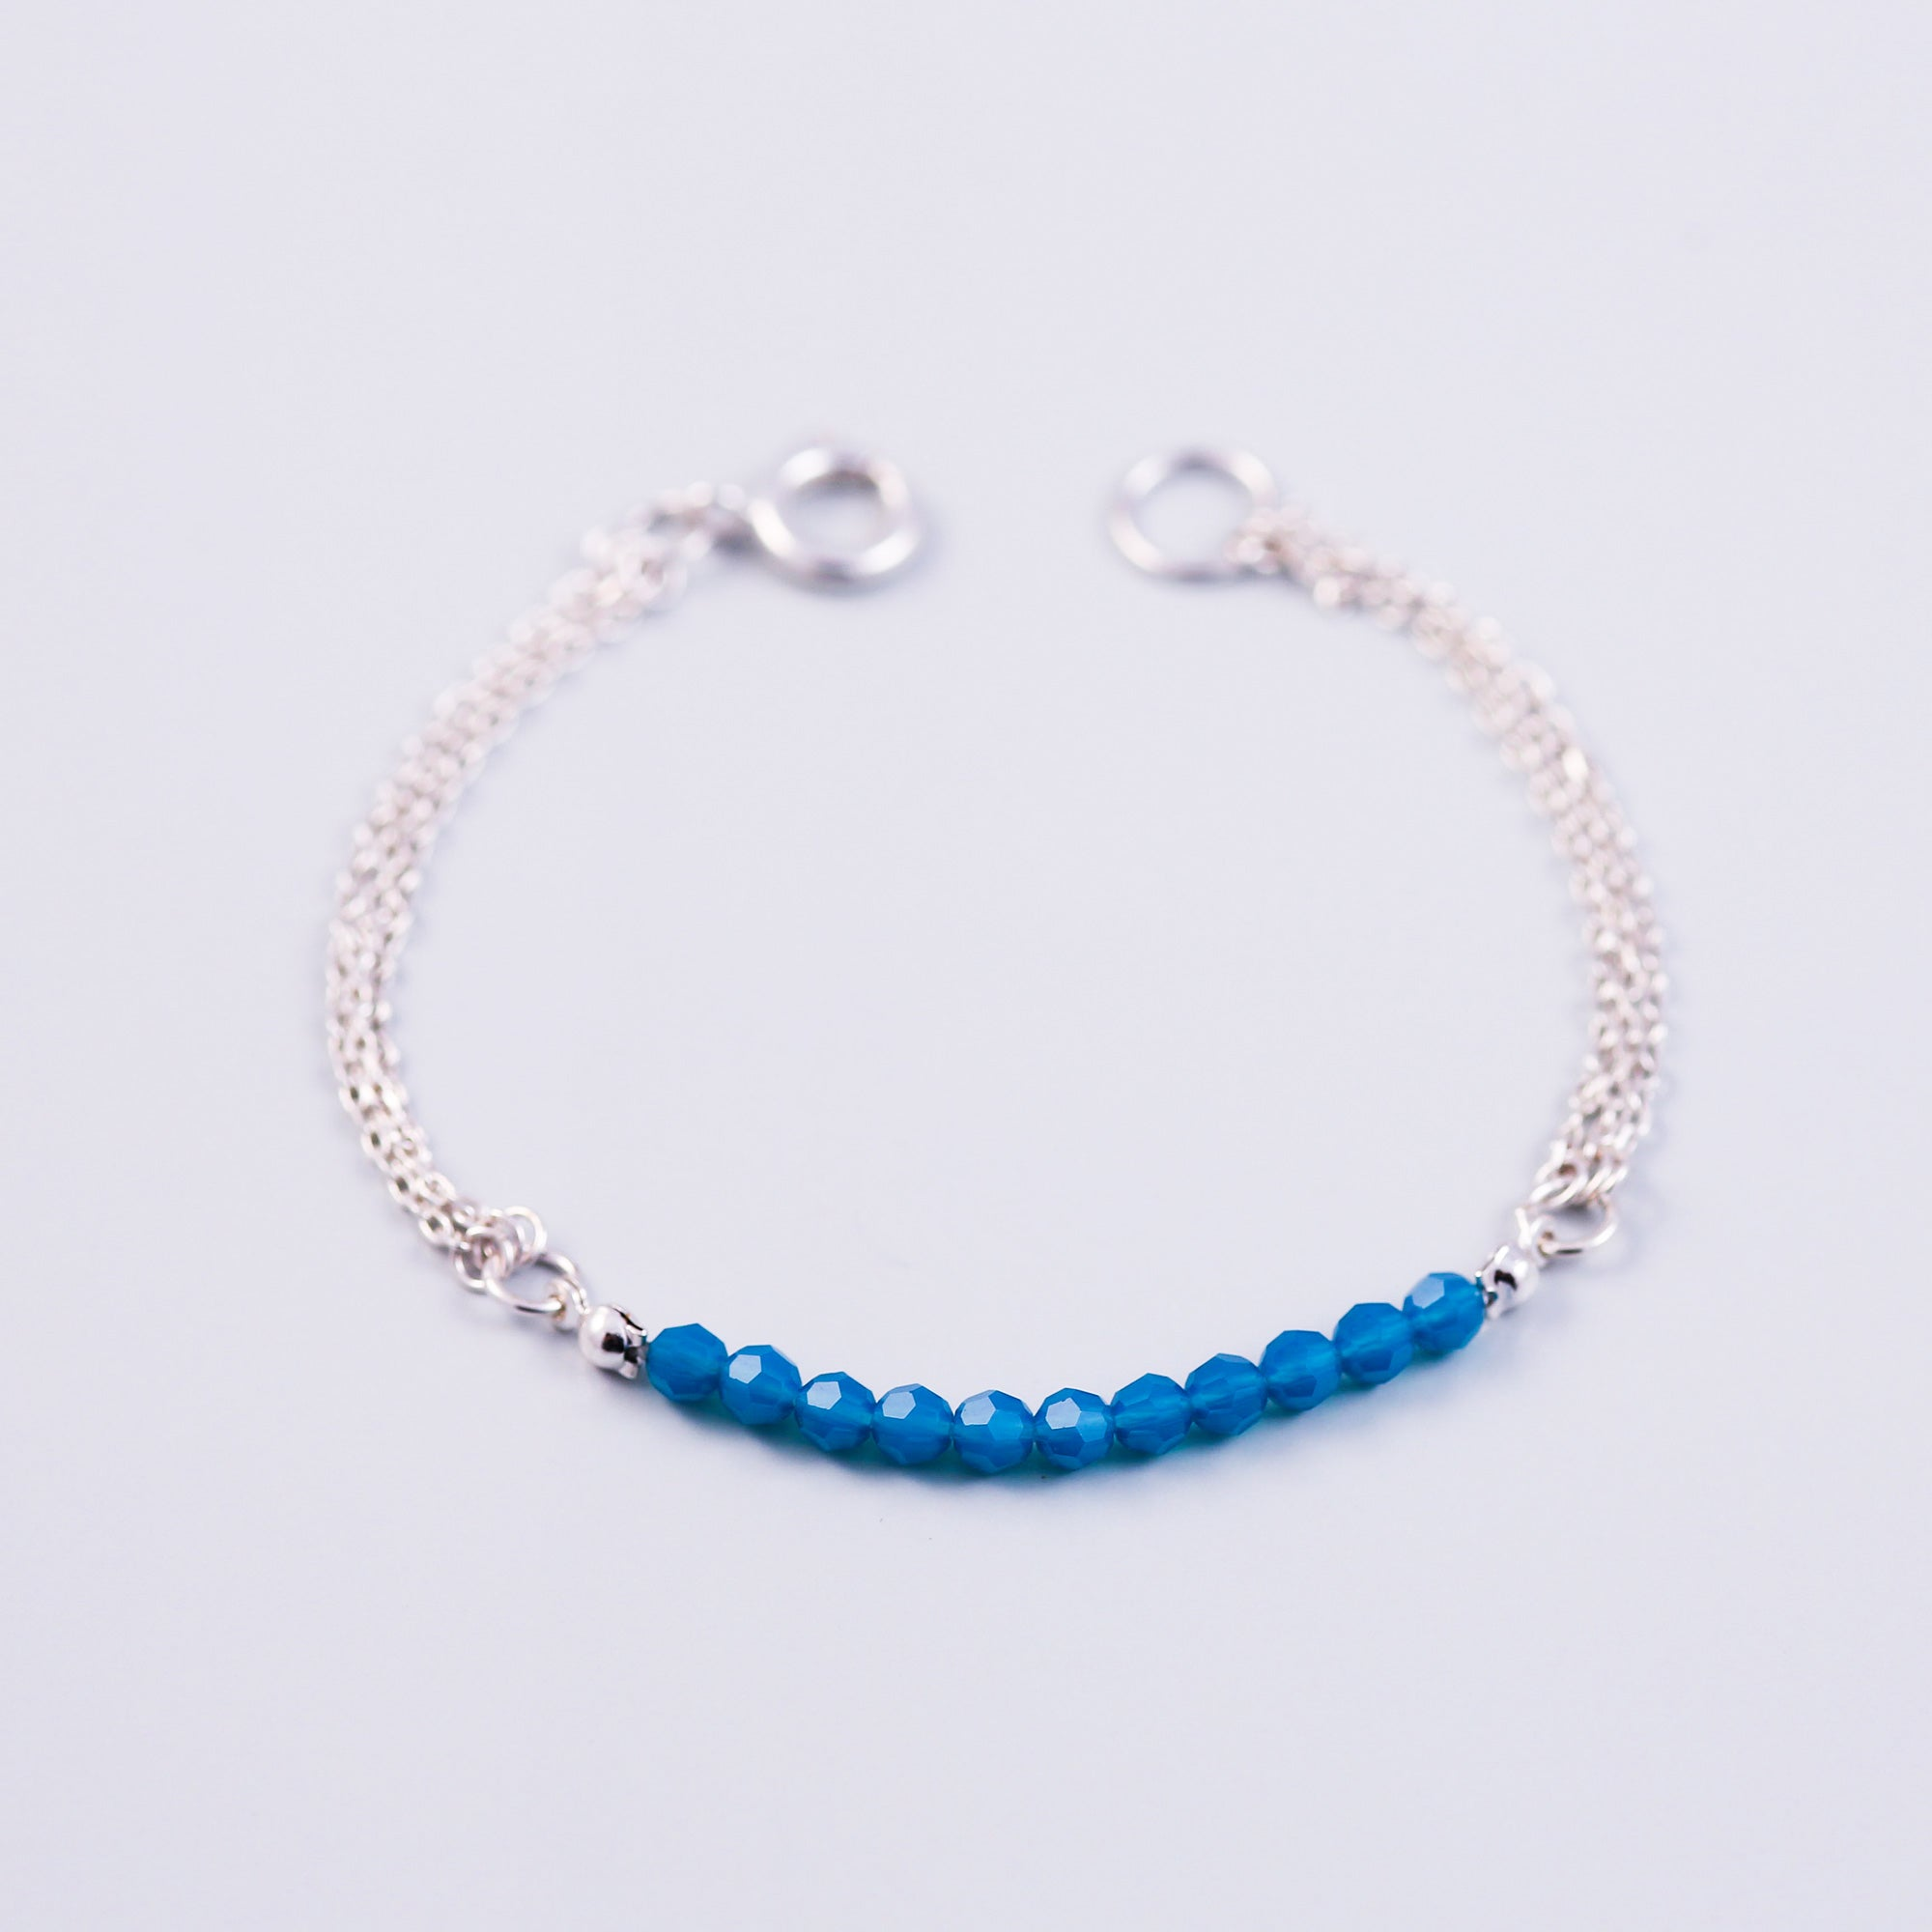 Silver & Caribbean Blue Opal Frienship BraceletBeaded Bracelet | Cute Friendship Bracelets | Friendship Jewellery | Silver & Car